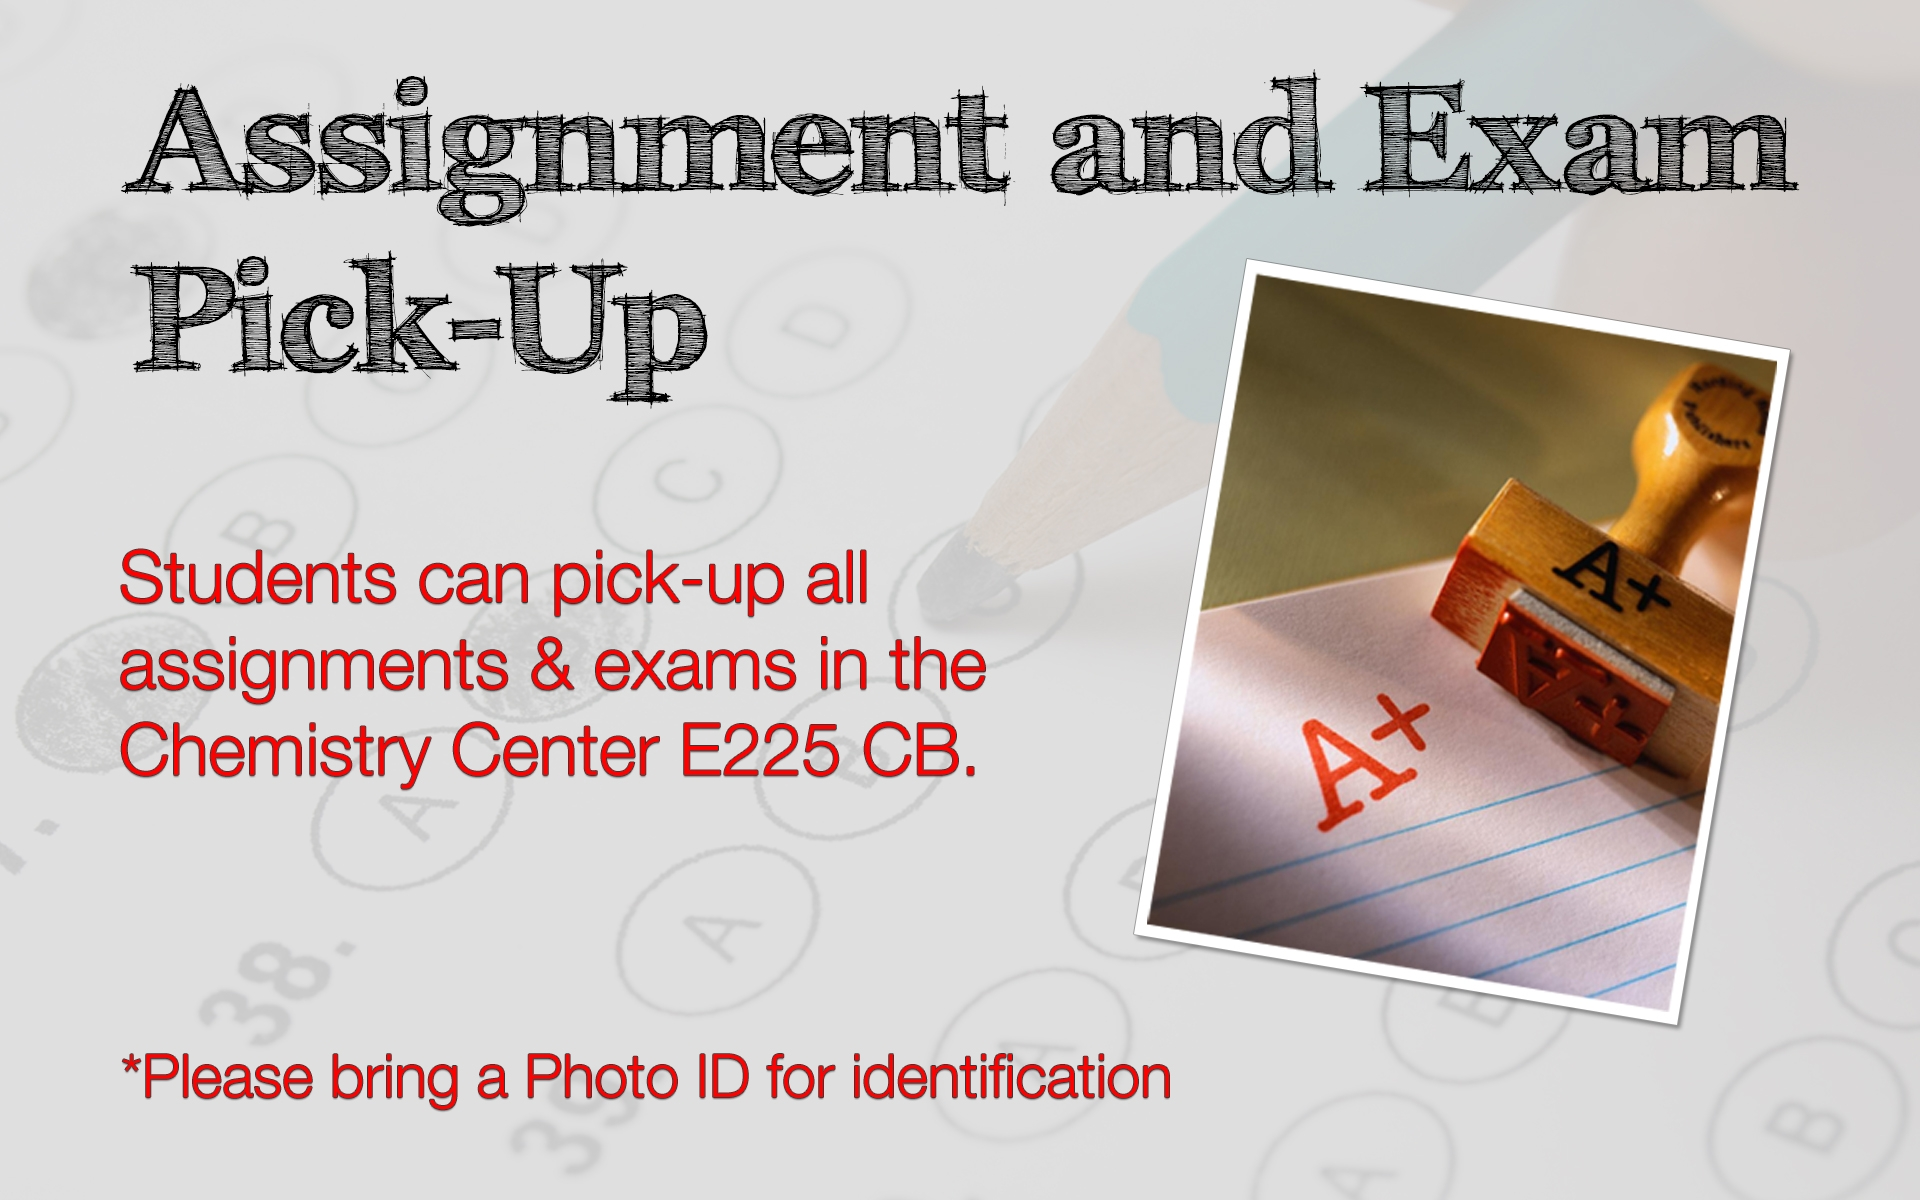 Assignment and Exam Pick-Up. Students can pick-up all assignments and exams in the Chemistry Center, E225 CB. Please bring a Photo ID for identification.